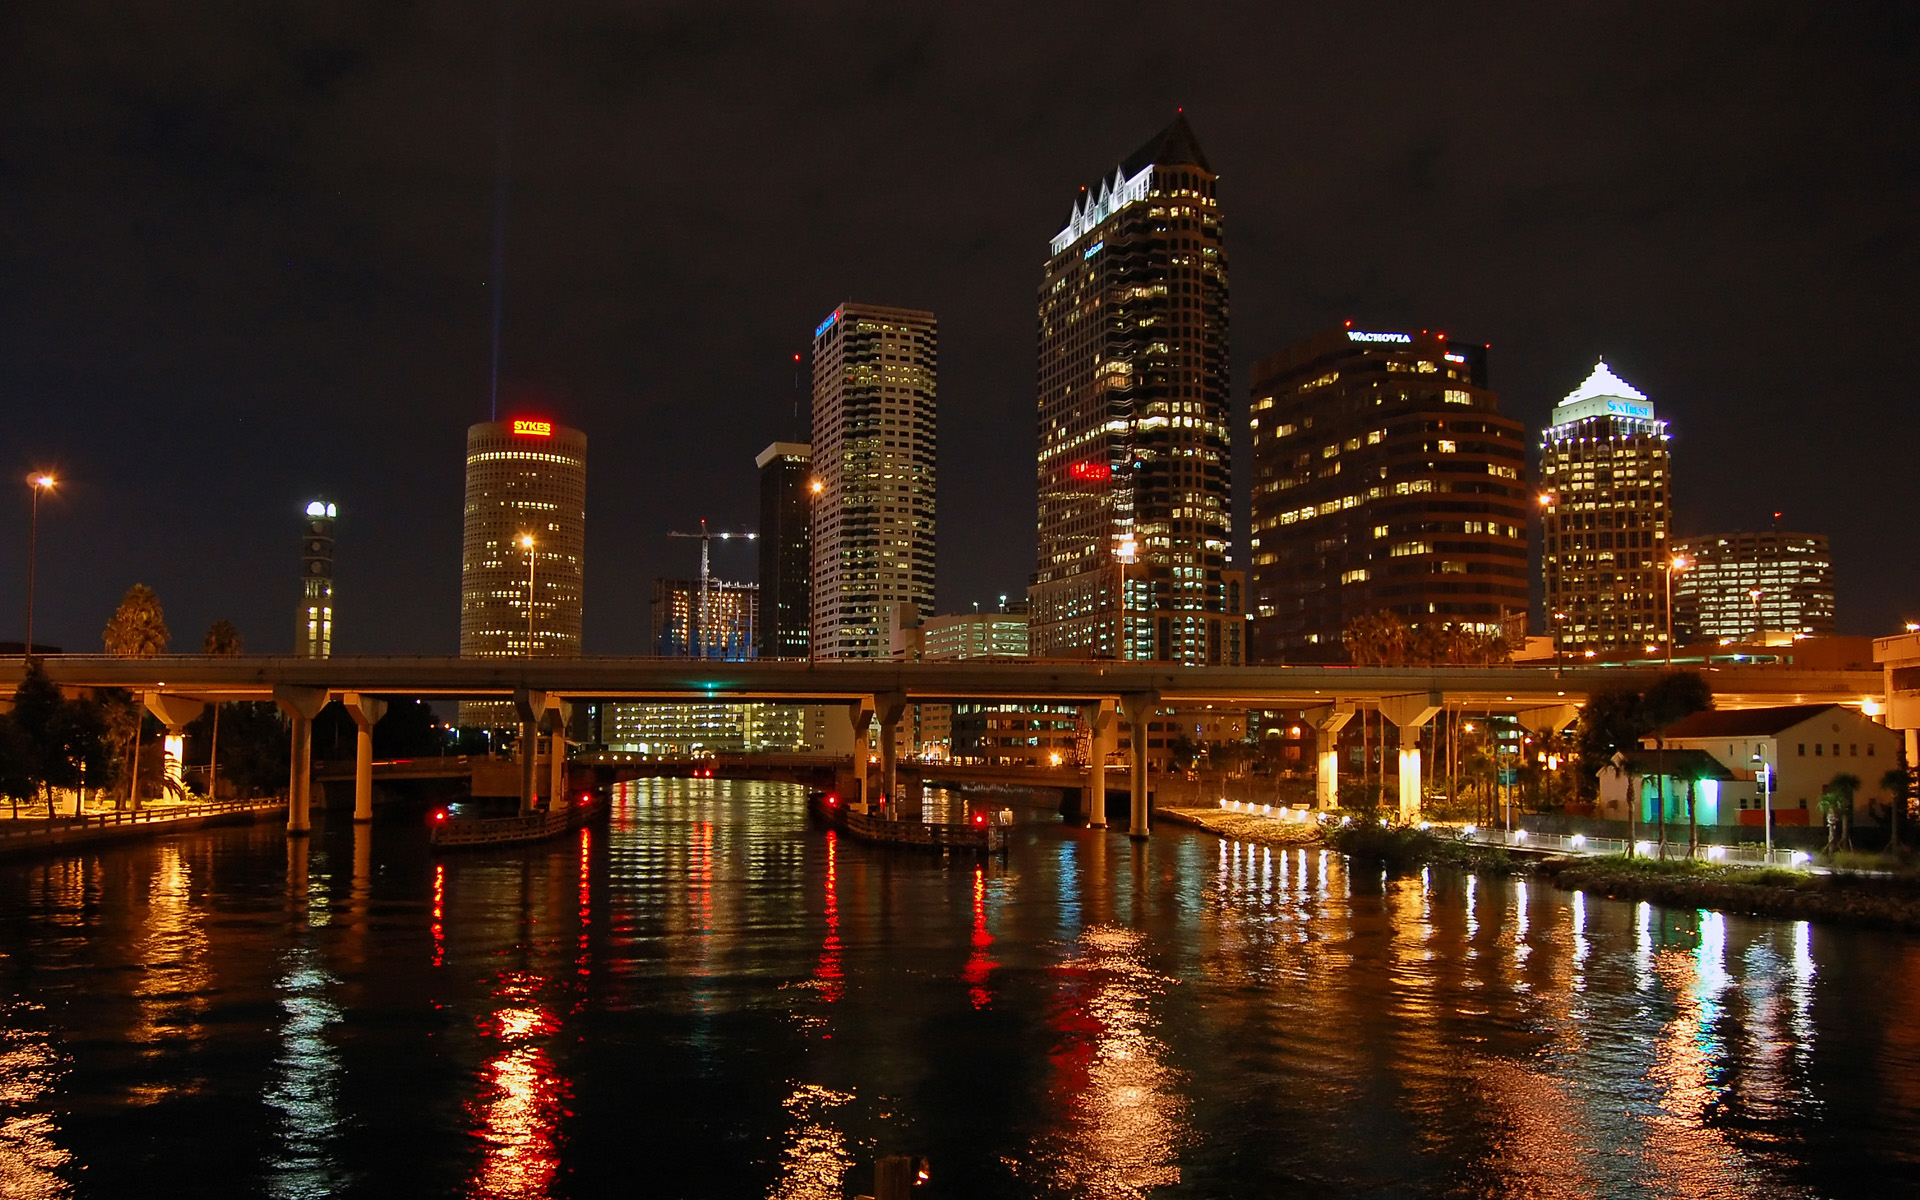 Full HD Wallpapers Night City Lights Wallpapers Pack 3 13 1920x1200